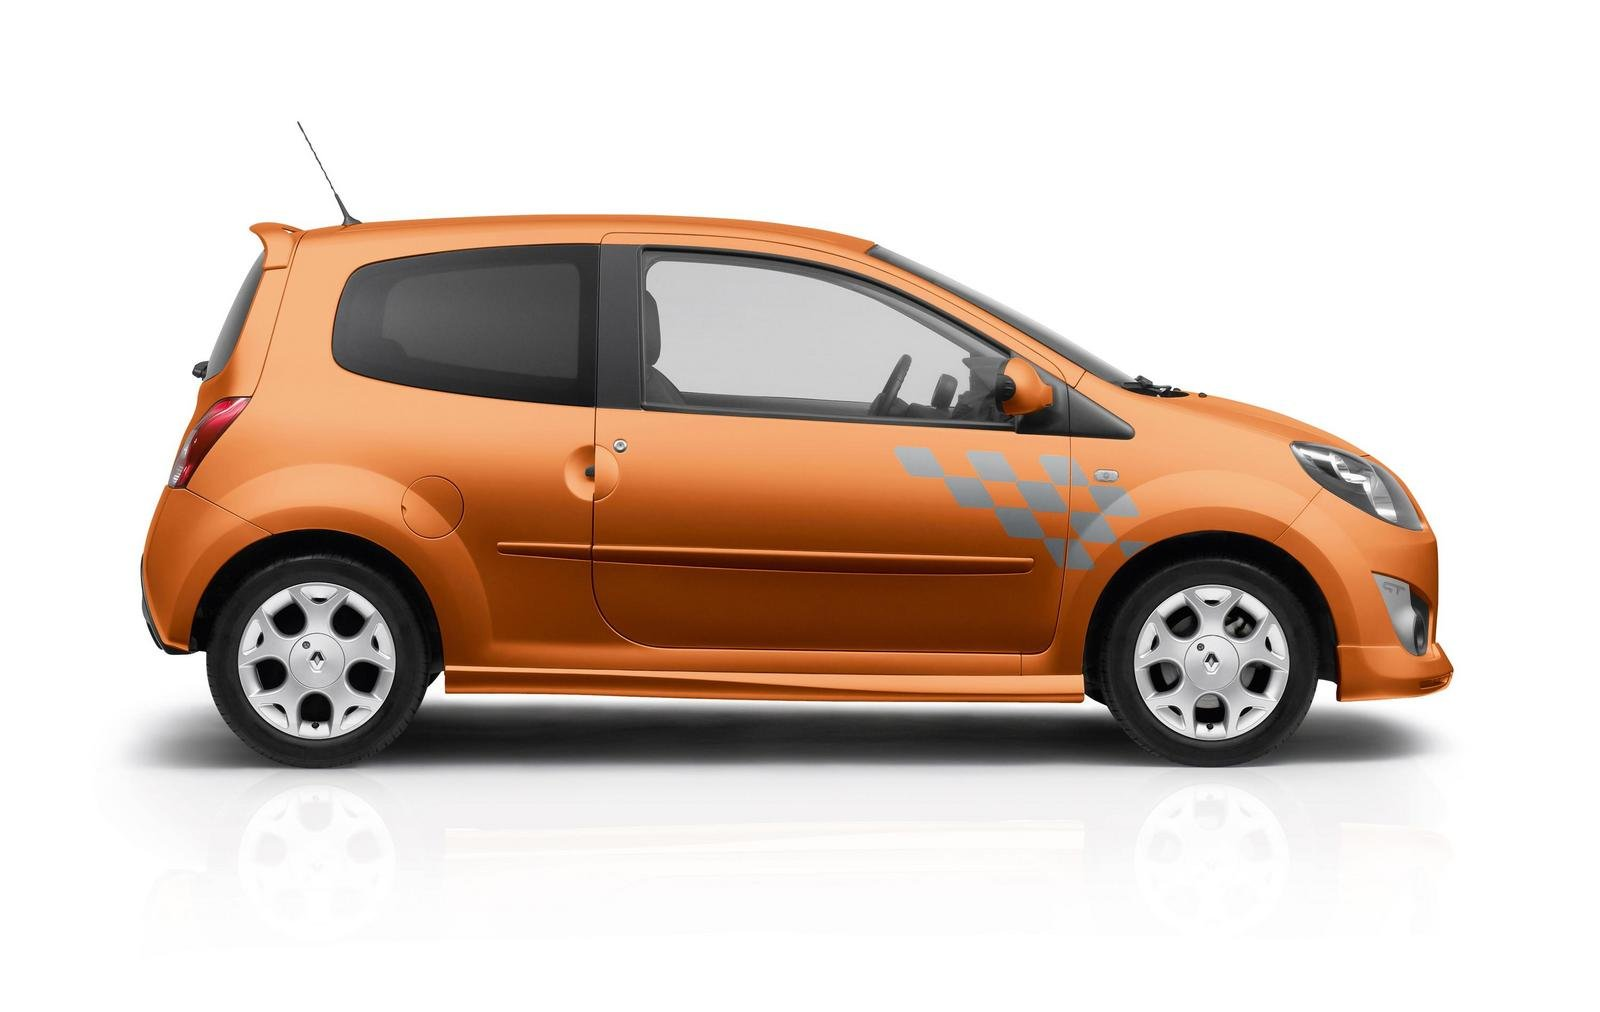 2009 renault twingo customization options picture 284633 car review top speed. Black Bedroom Furniture Sets. Home Design Ideas